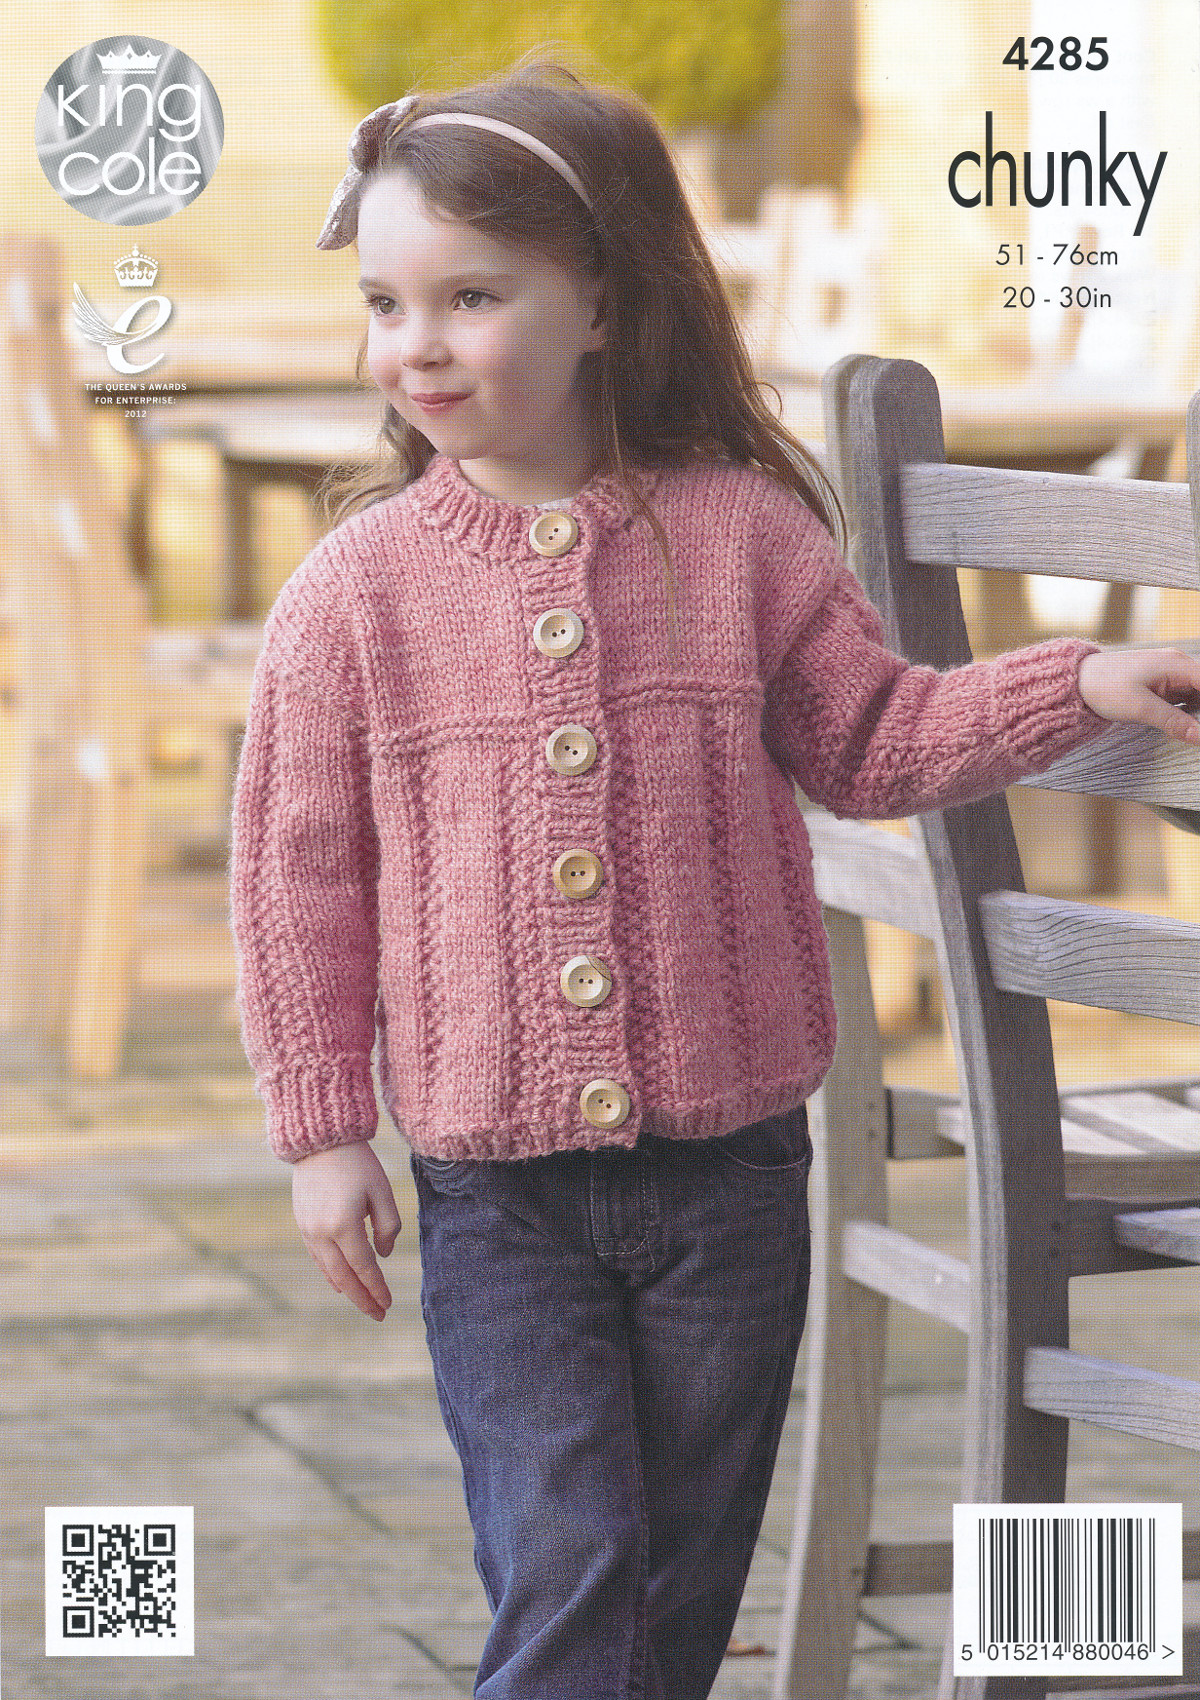 Knitting Pattern For Childs Chunky Cardigan : Kids Chunky Knitting Pattern King Cole Childrens Sweater Jumper Cardigan 4285...